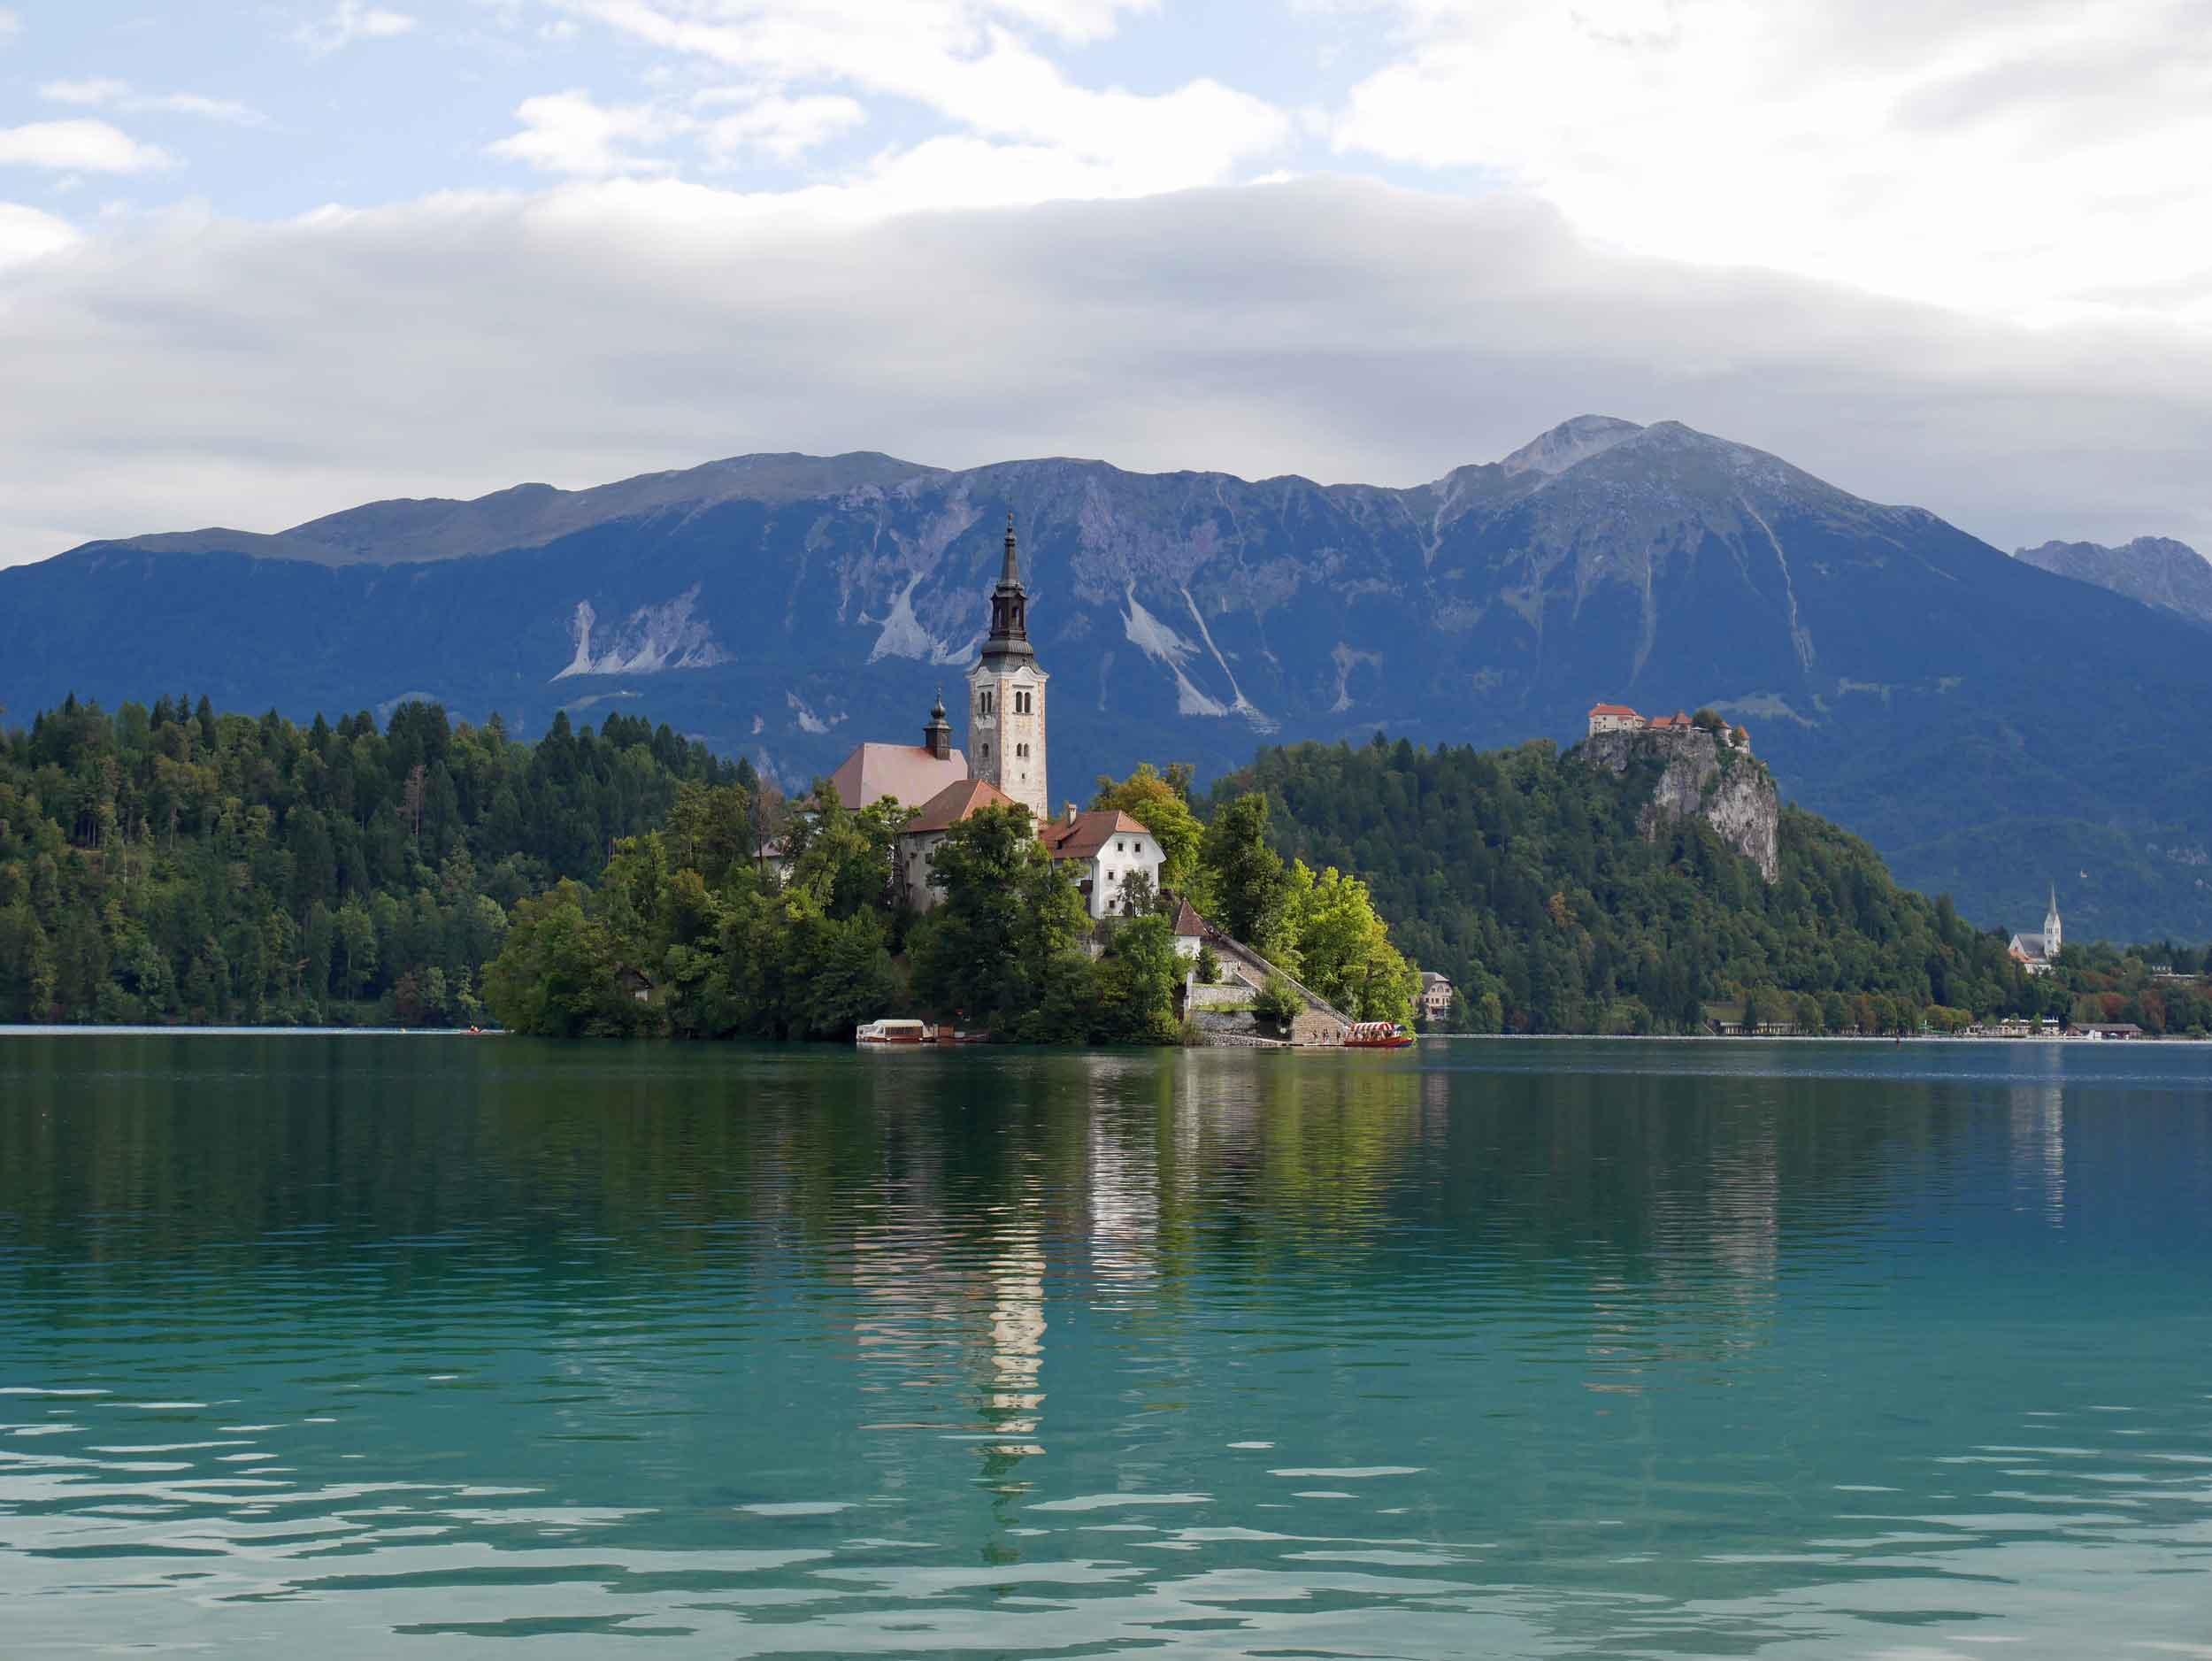 Sunday provided clearer skies and a fairytale view of Lake Bled, set amidst the Julian Alps (Aug 20).